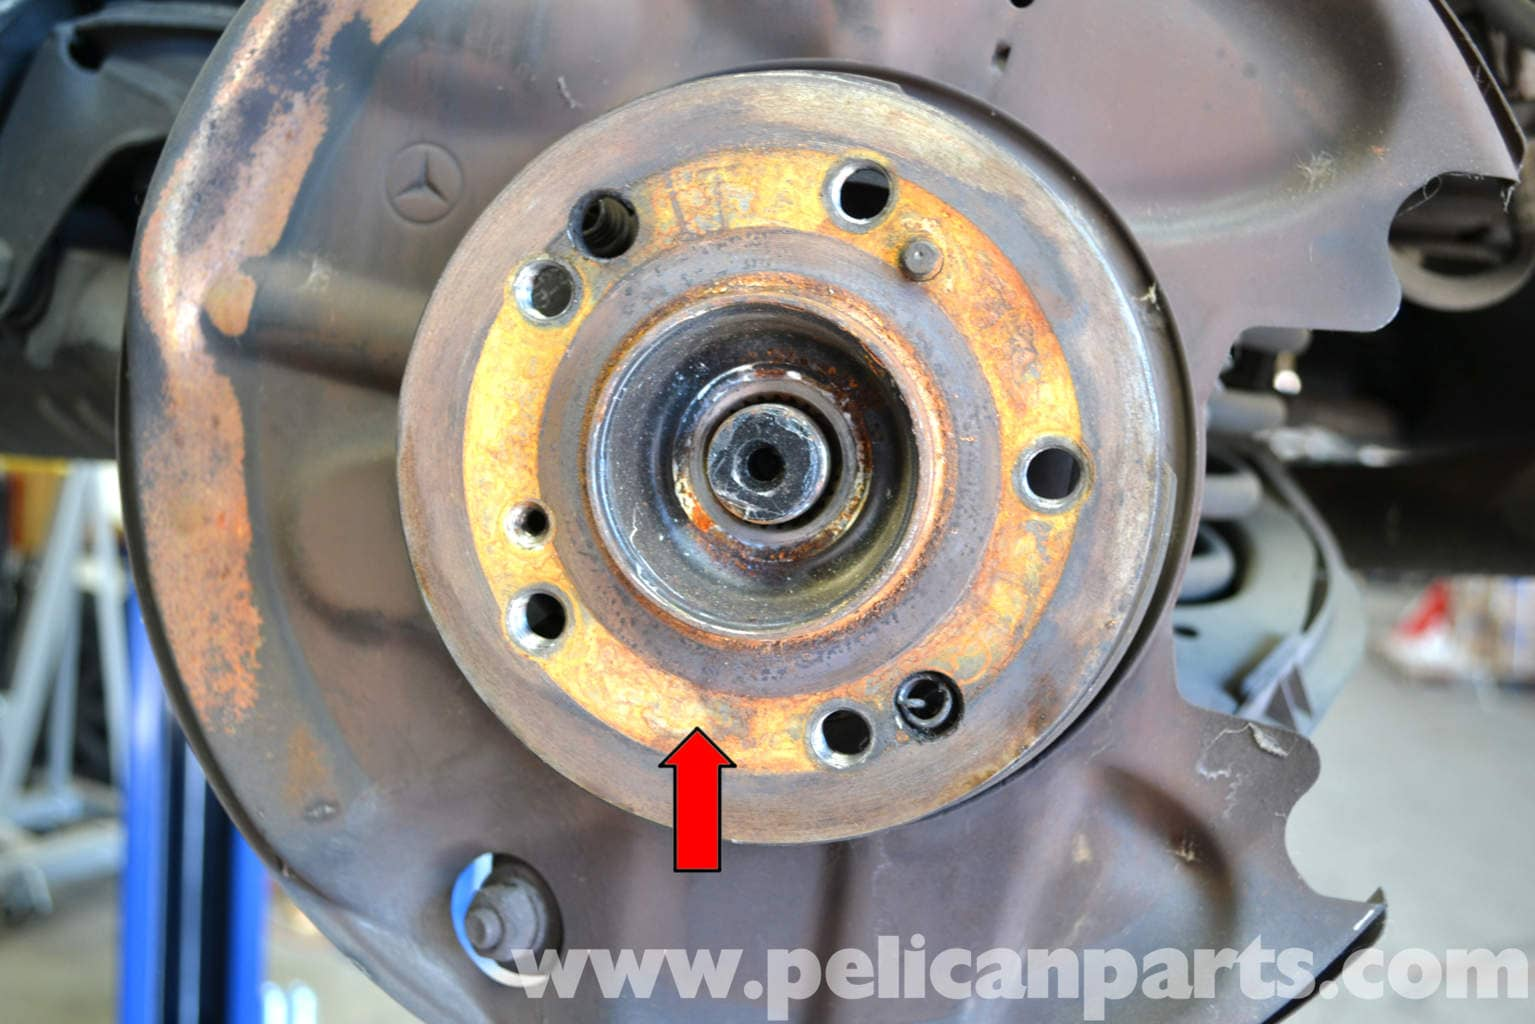 Mercedes benz w124 rear rotor replacement 1986 1995 e for Mercedes benz rotors replacement